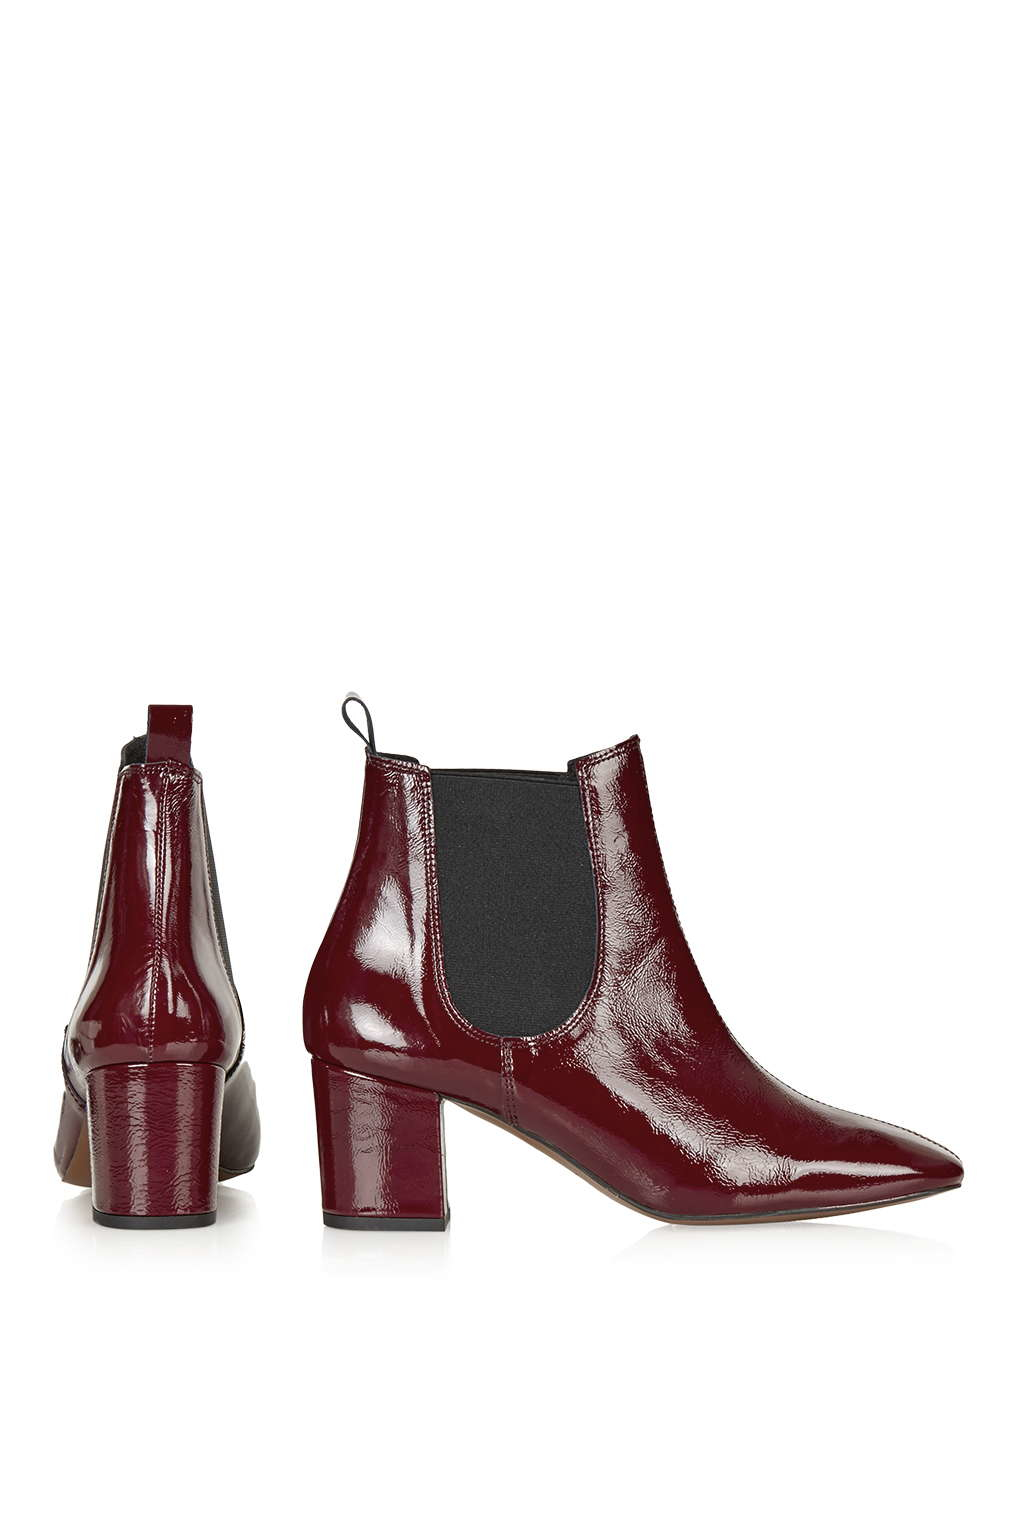 TOPSHOP Mary '60s Chelsea Boots in Red